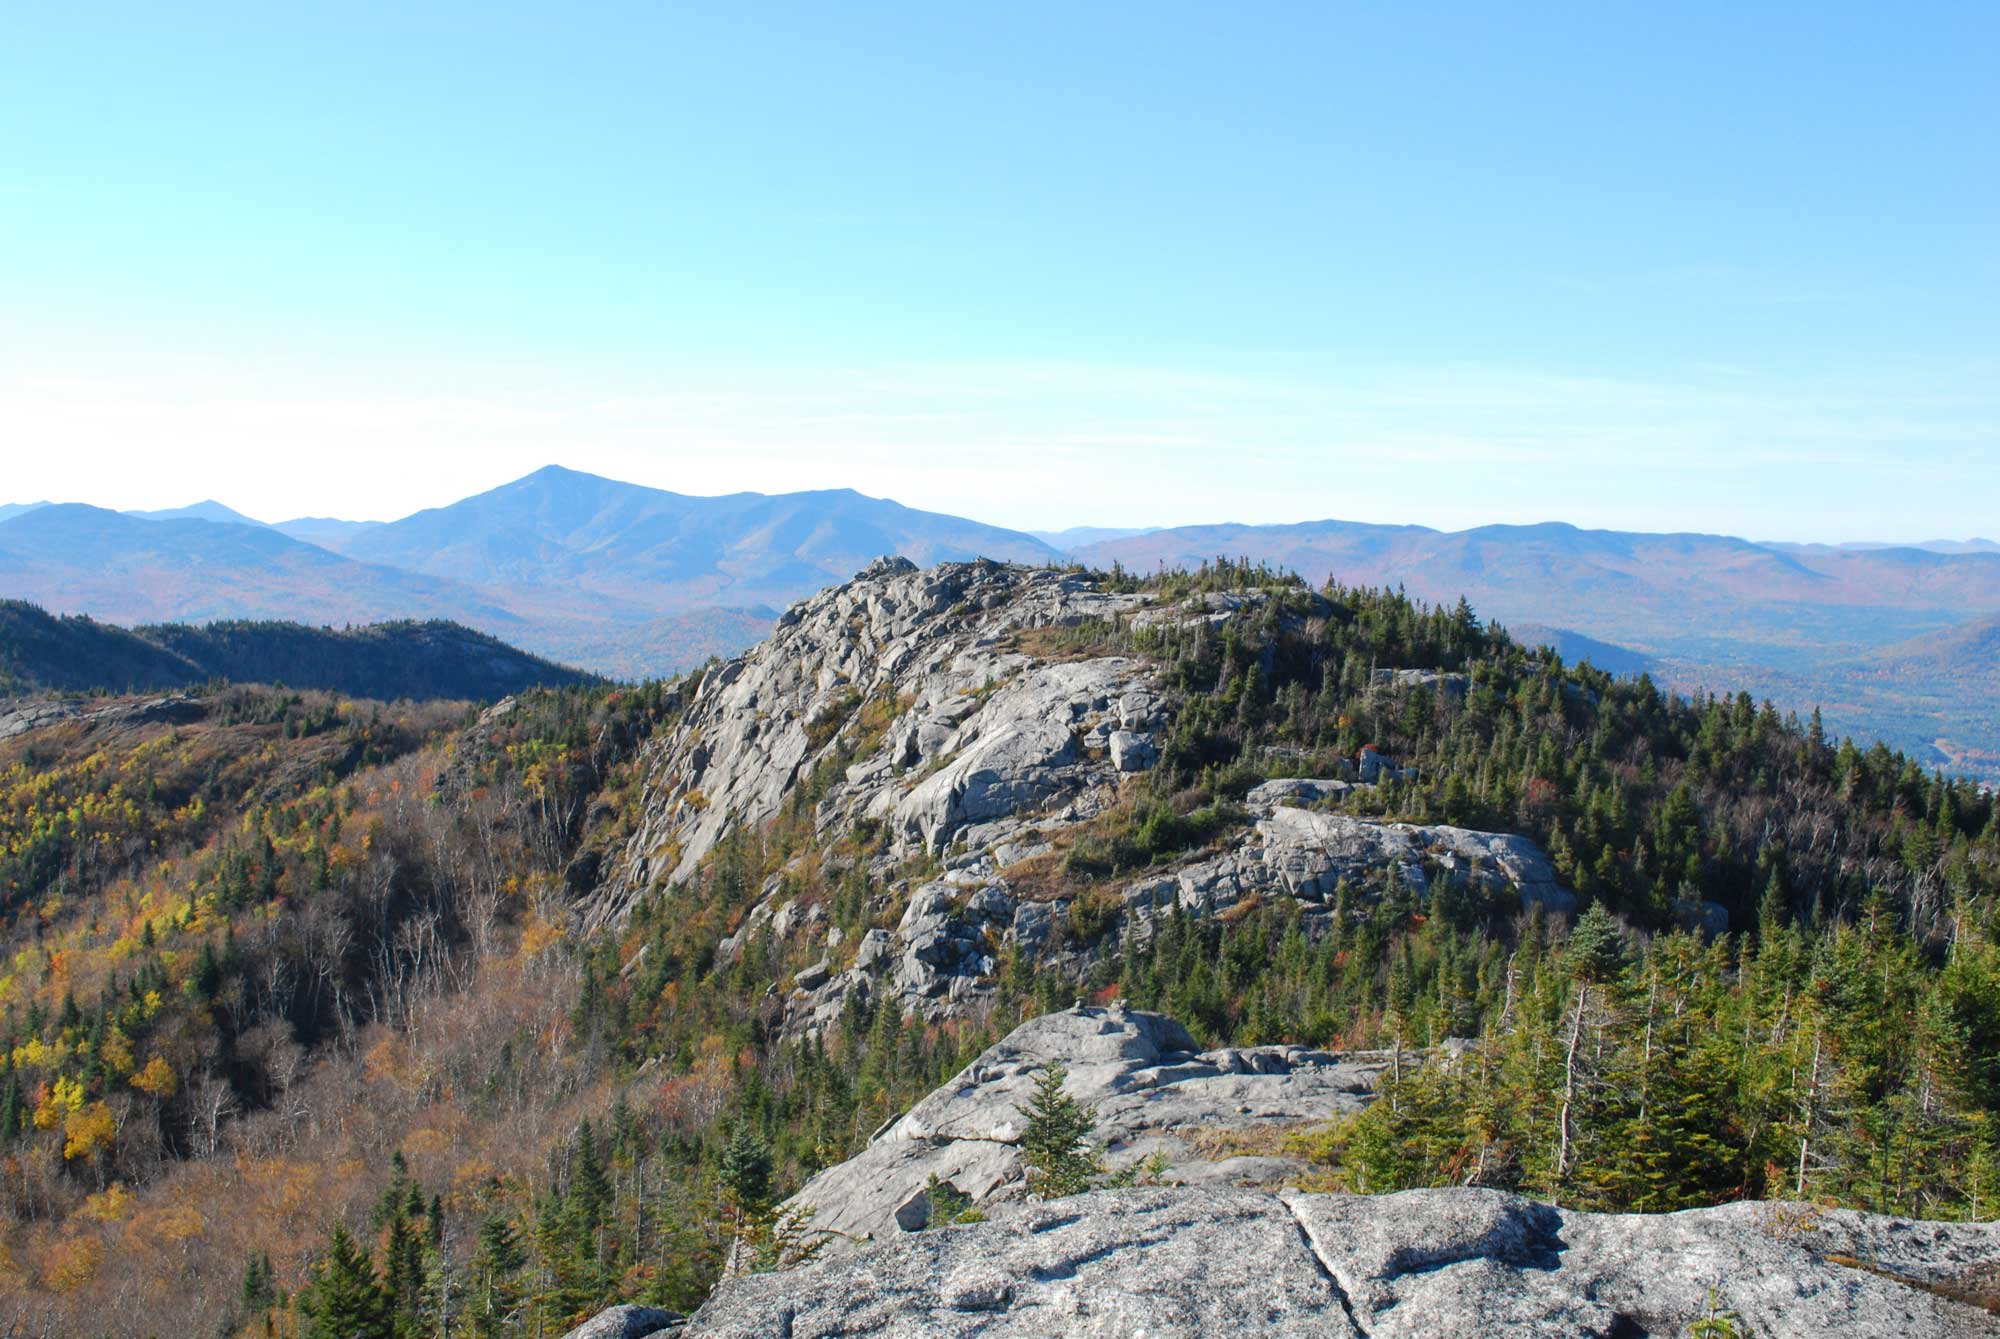 Photograph of a rock outcropping in the Adirondacks.